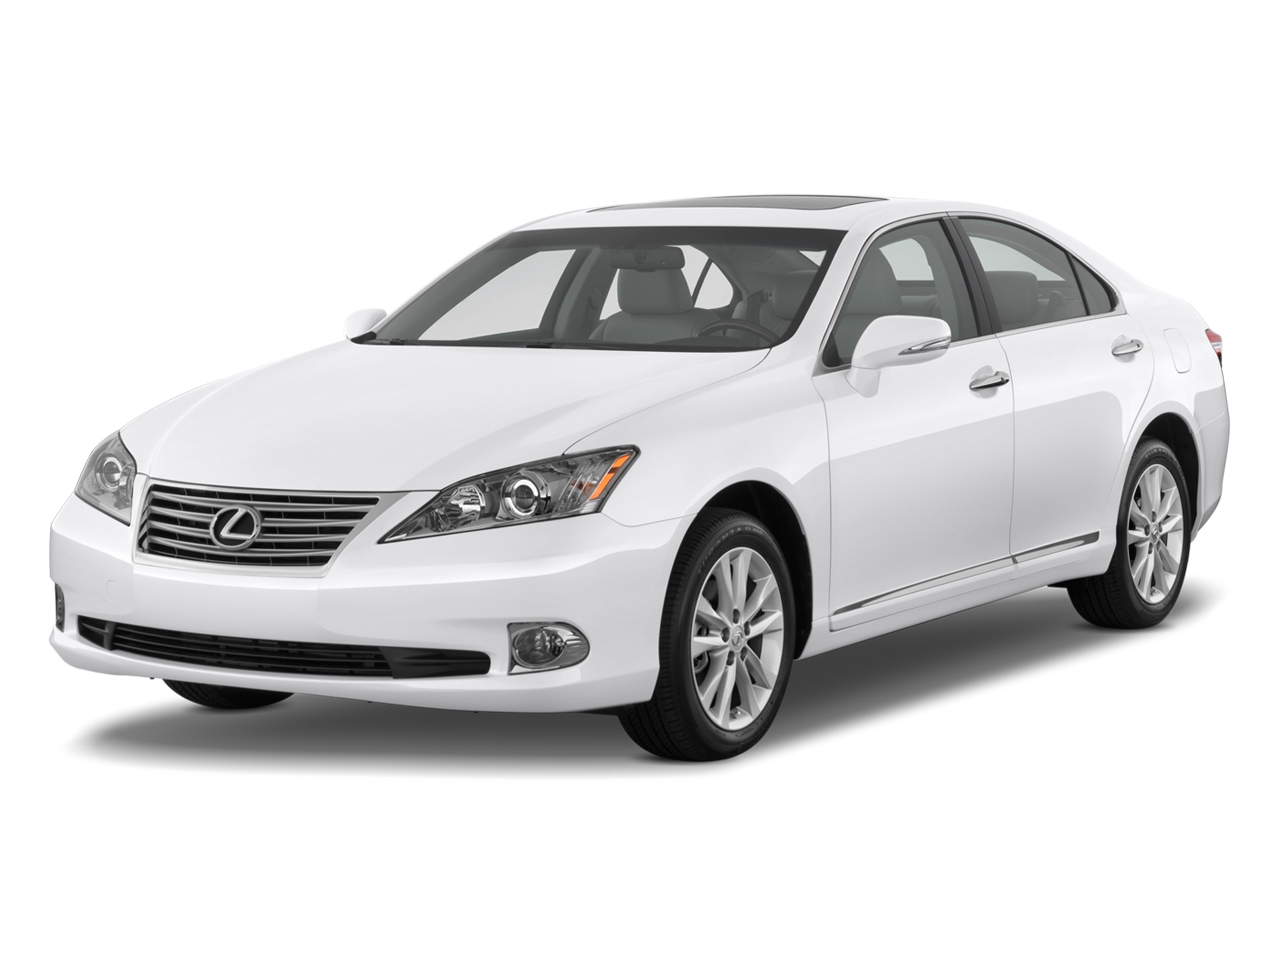 2010 lexus es 350 review ratings specs prices and. Black Bedroom Furniture Sets. Home Design Ideas